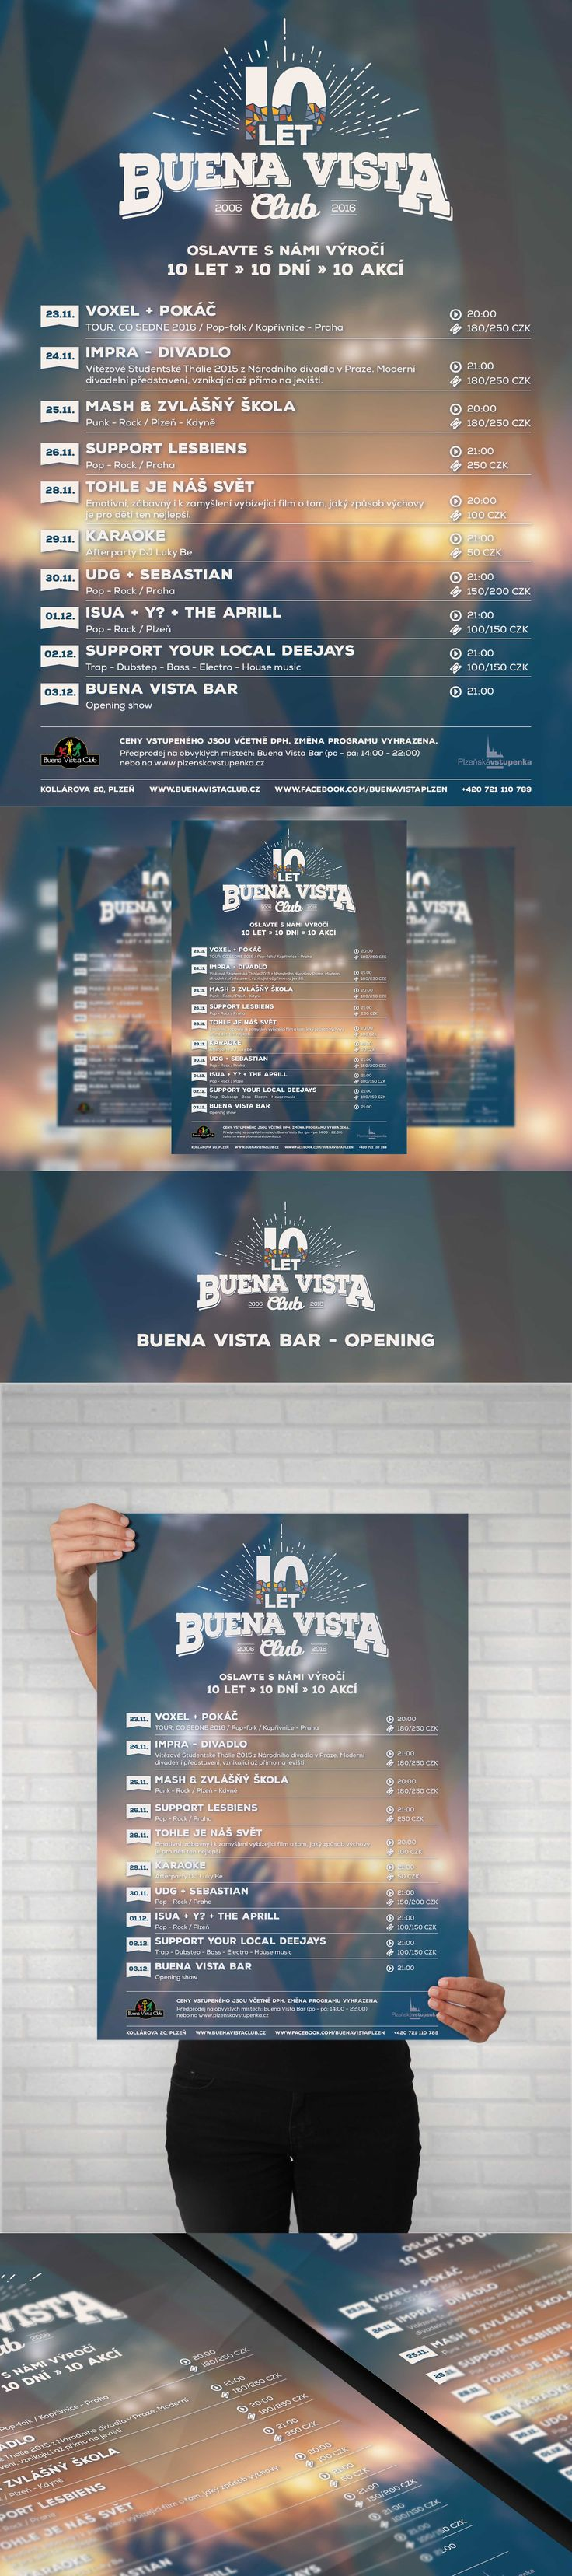 Buena Vista Club Event list - A1, A2, A5 Poster, Facebook event header and preview. Poster design was created according to interior of club. #poster #posterdesign #fbheader #graphicdesign